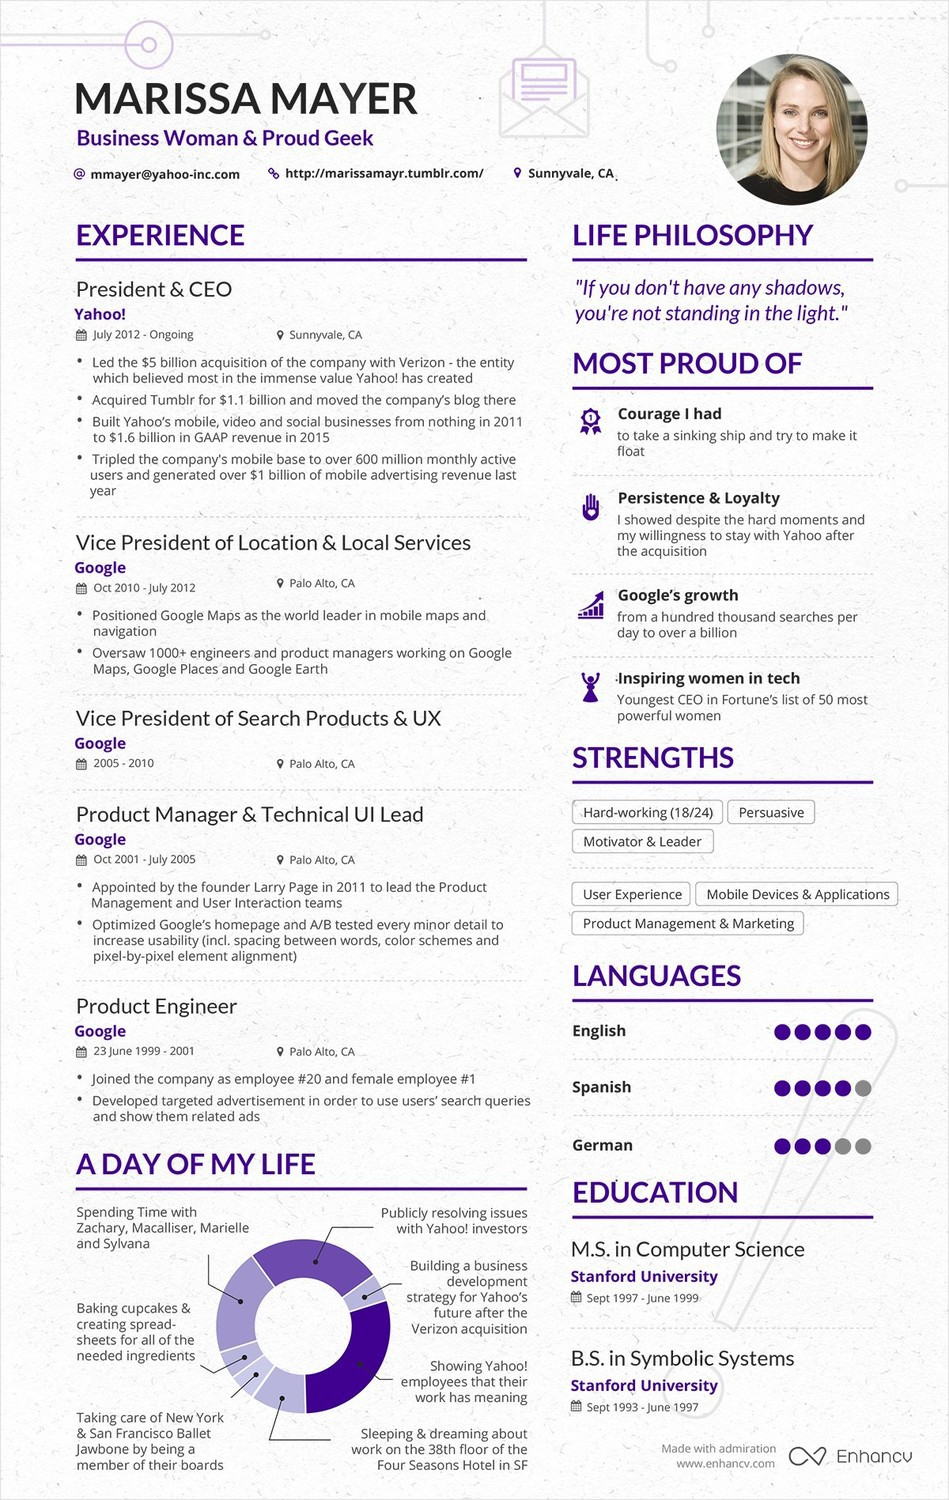 Why Marissa Mayer's Resume Isn't Right For You